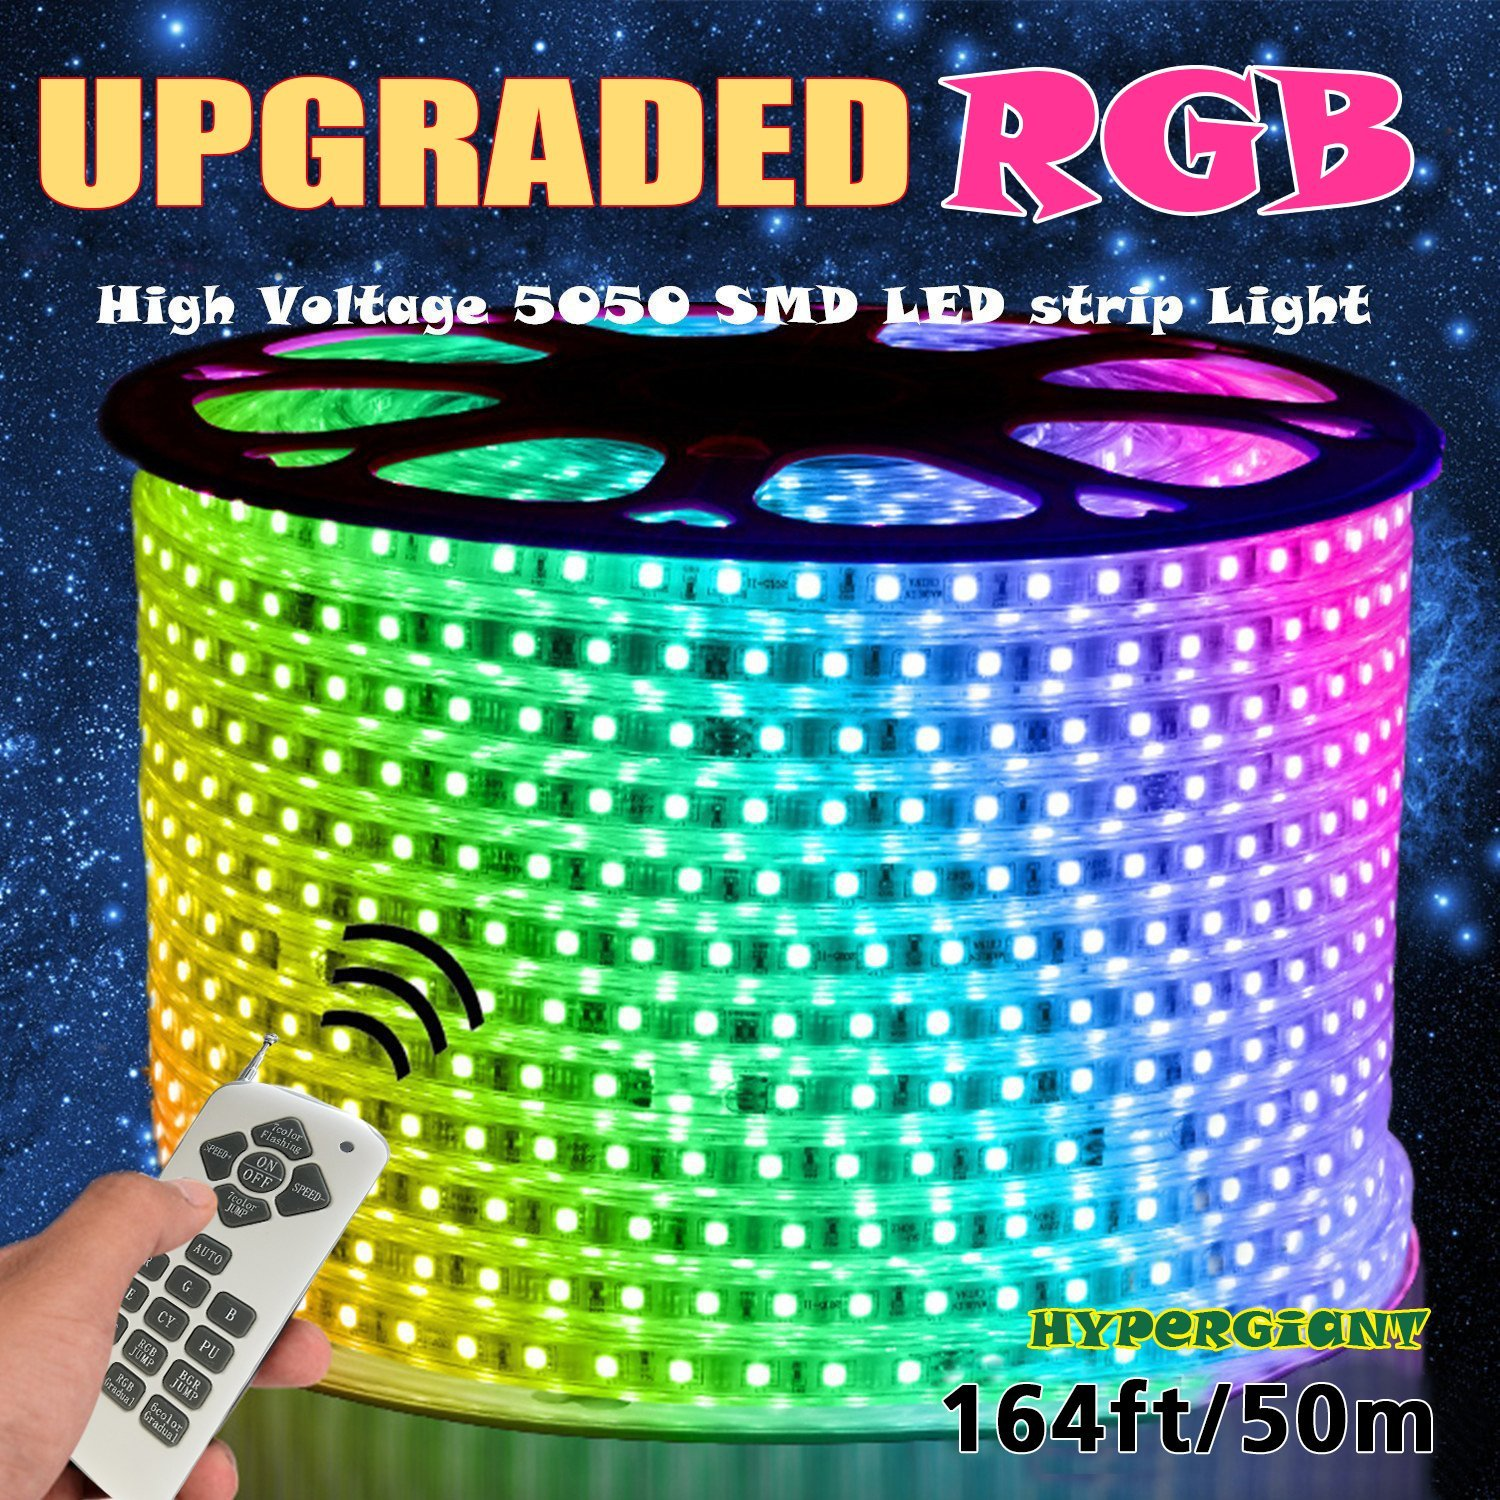 Hypergiant AC 110-120V Flexible RGB LED Strip Lights, 60 LEDs/M, Waterproof, Multi Color Changing 5050 SMD LED Rope Light + Remote Controller for Party Christmas Decoration (164ft/50m)